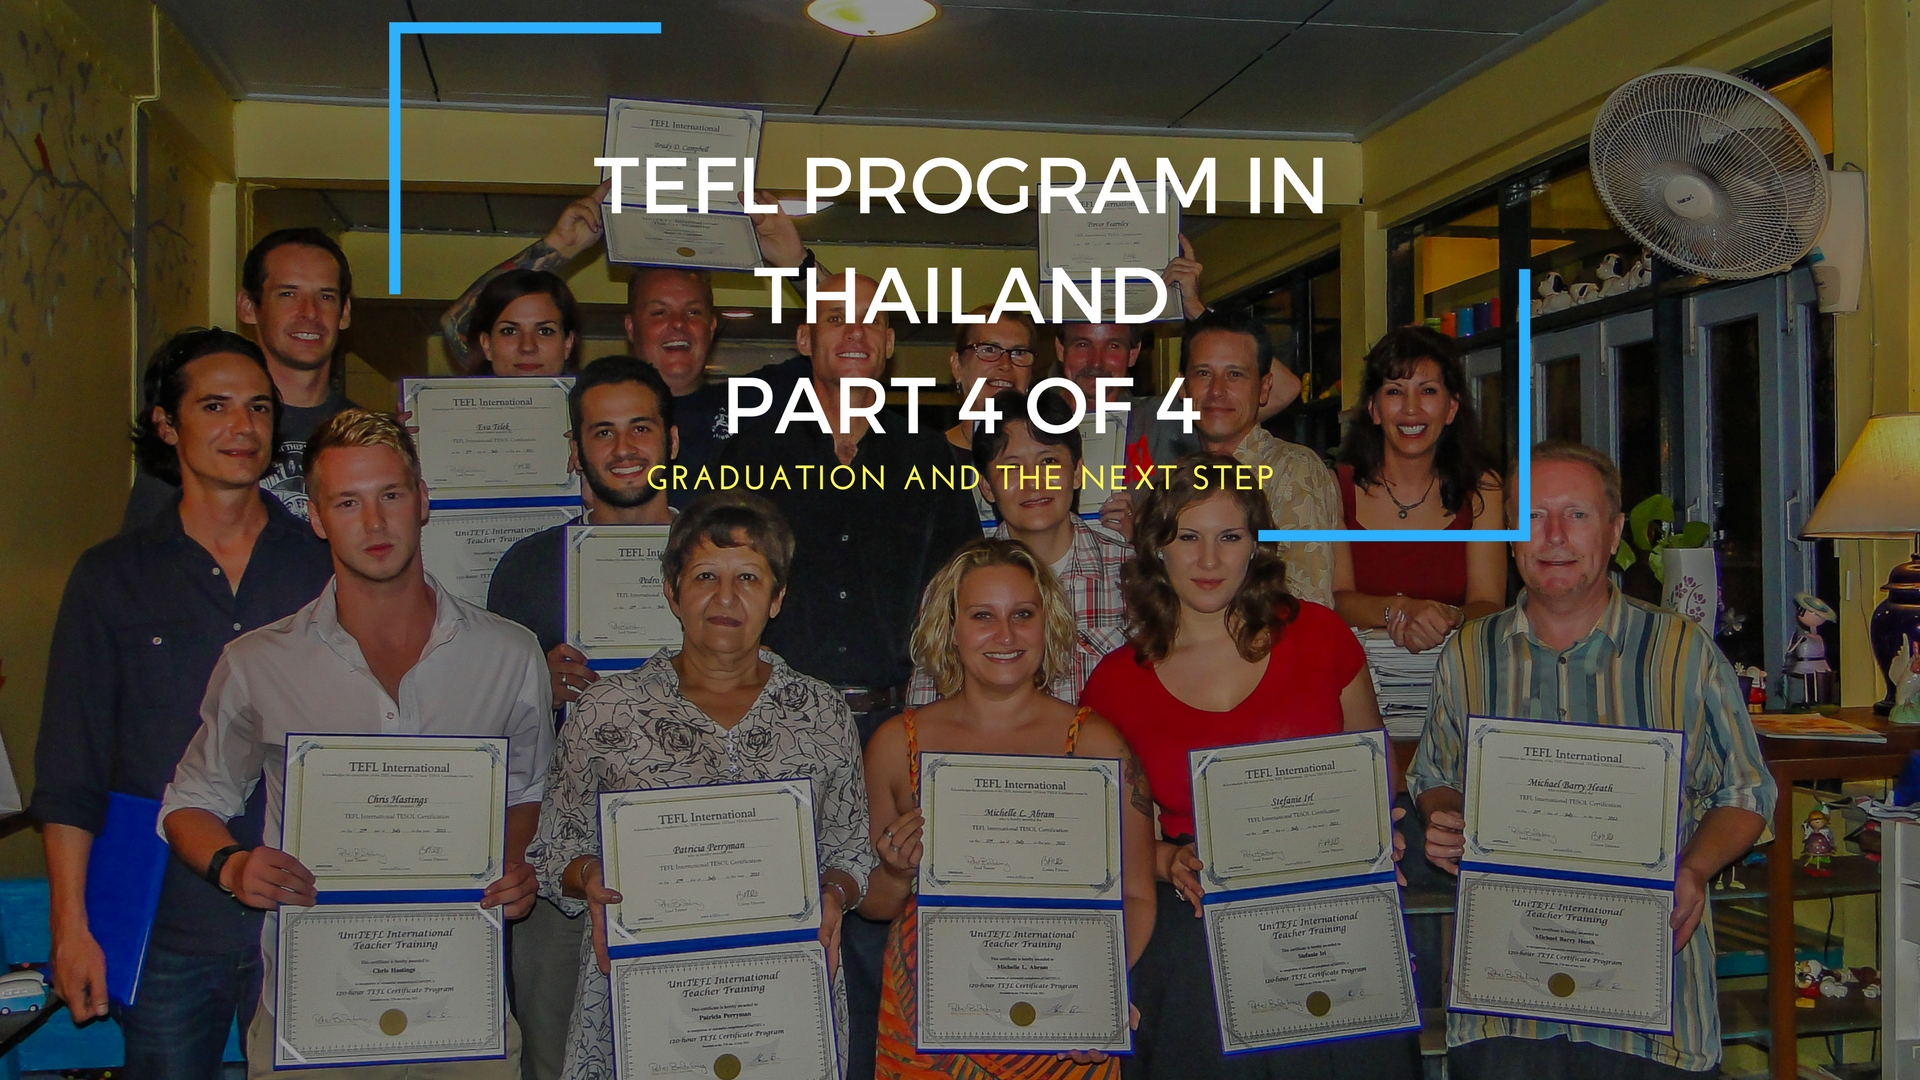 TEFL Program In Thailand - Part 4 of 4 - Graduation And The Next Step